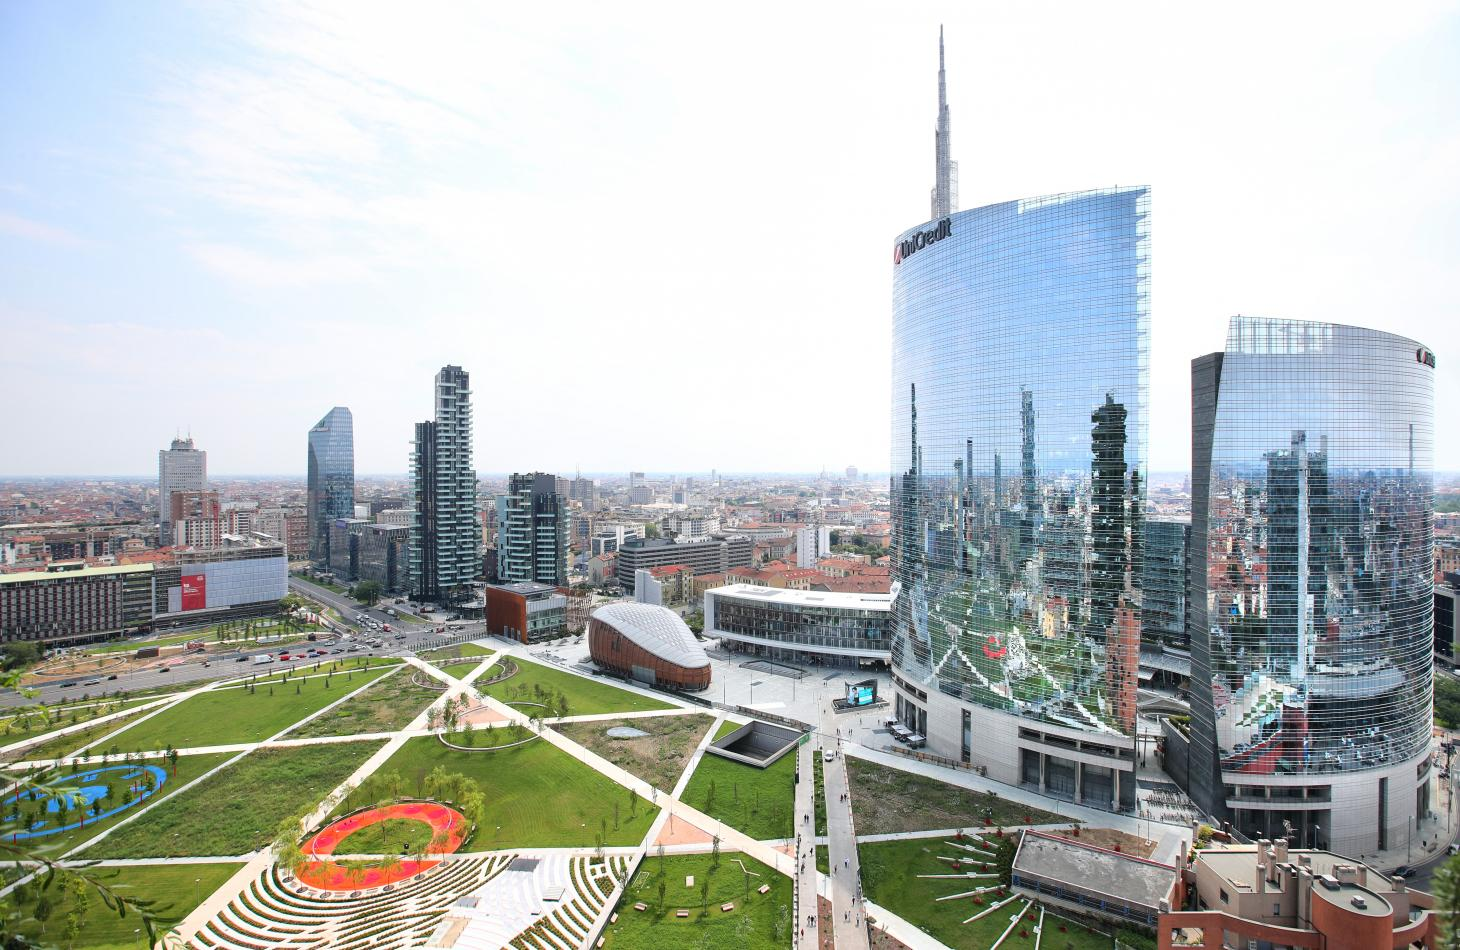 Milan's Porta Nuova urban success story | Wallpaper*